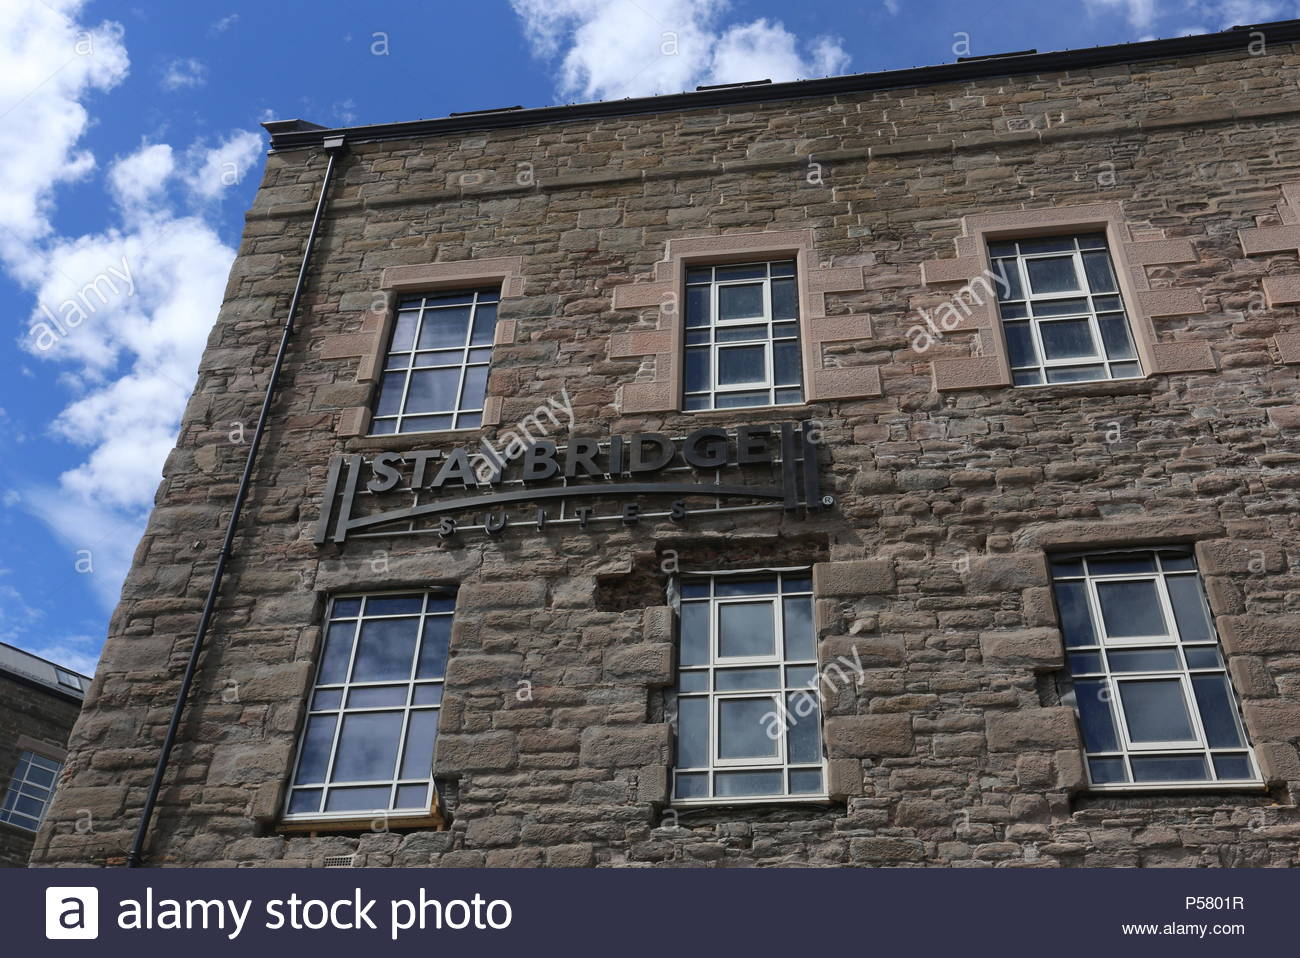 Former Baxter Brothers Mills being refurbished into Hotel Indigo and Staybridge Suites Dundee Scotland  June 2018 - Stock Image